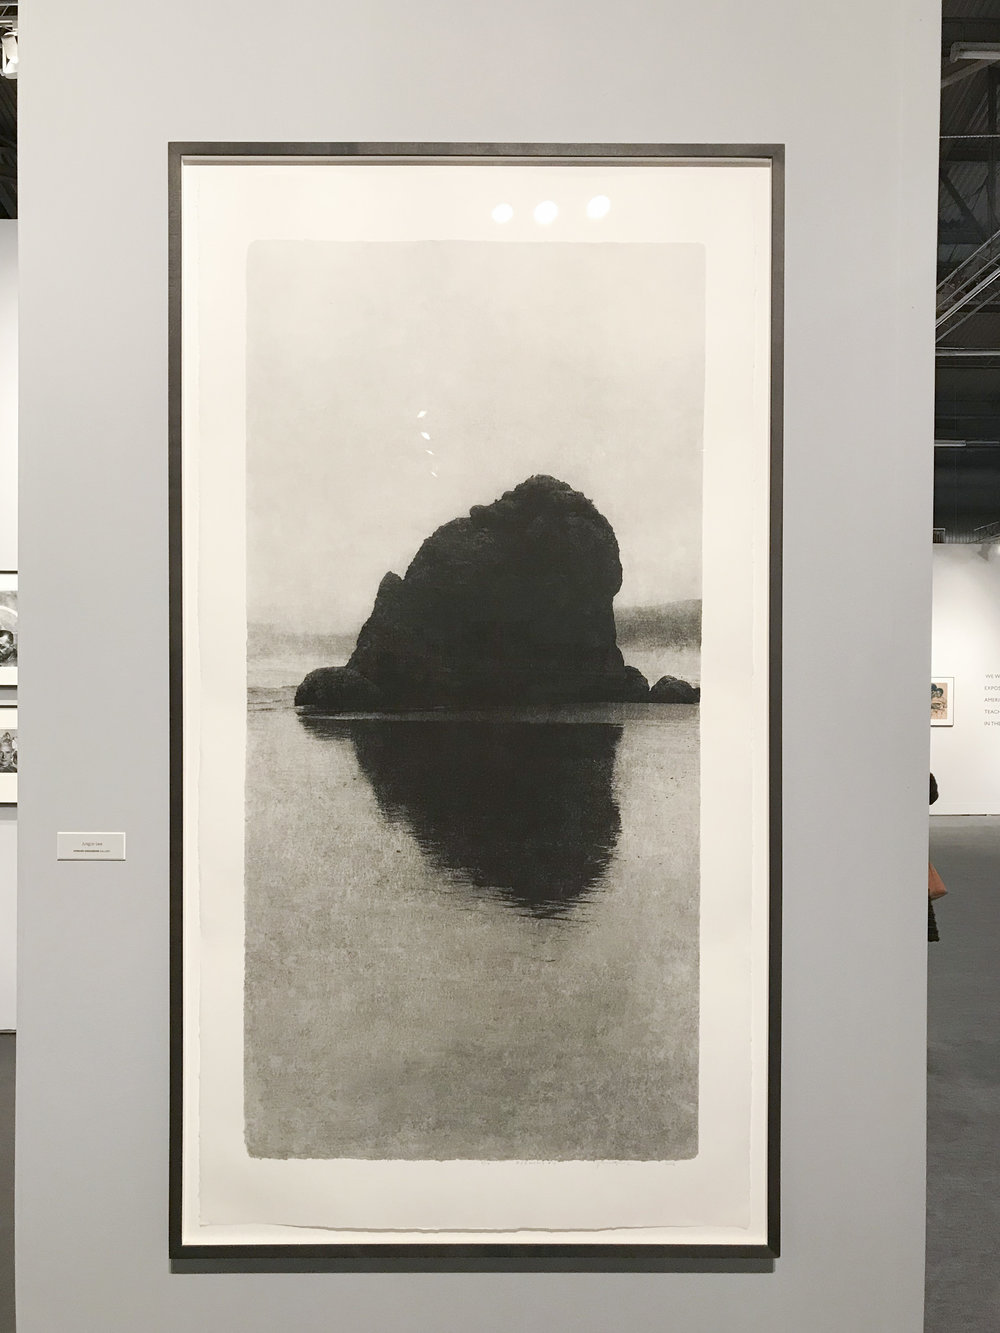 Jungjin Lee,  Opening #13 , 2016, inkjet print on mulberry paper, 50 x 25 inches. On view at Howard Greenberg Gallery (Booth 501).